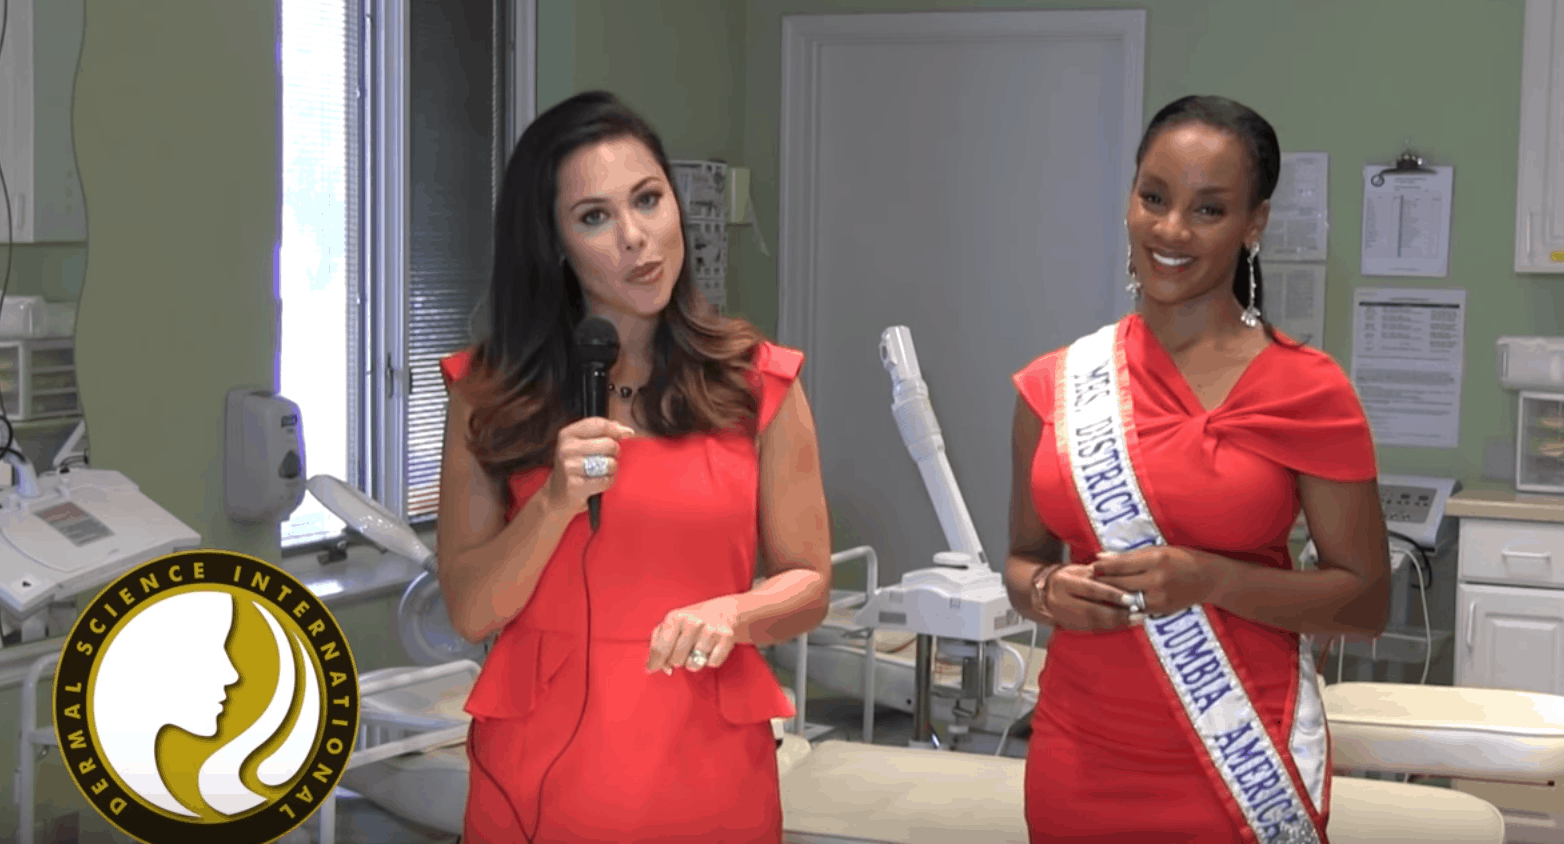 Mrs. DC America 2016 Recommends DSI Aesthetics and Nail Academy